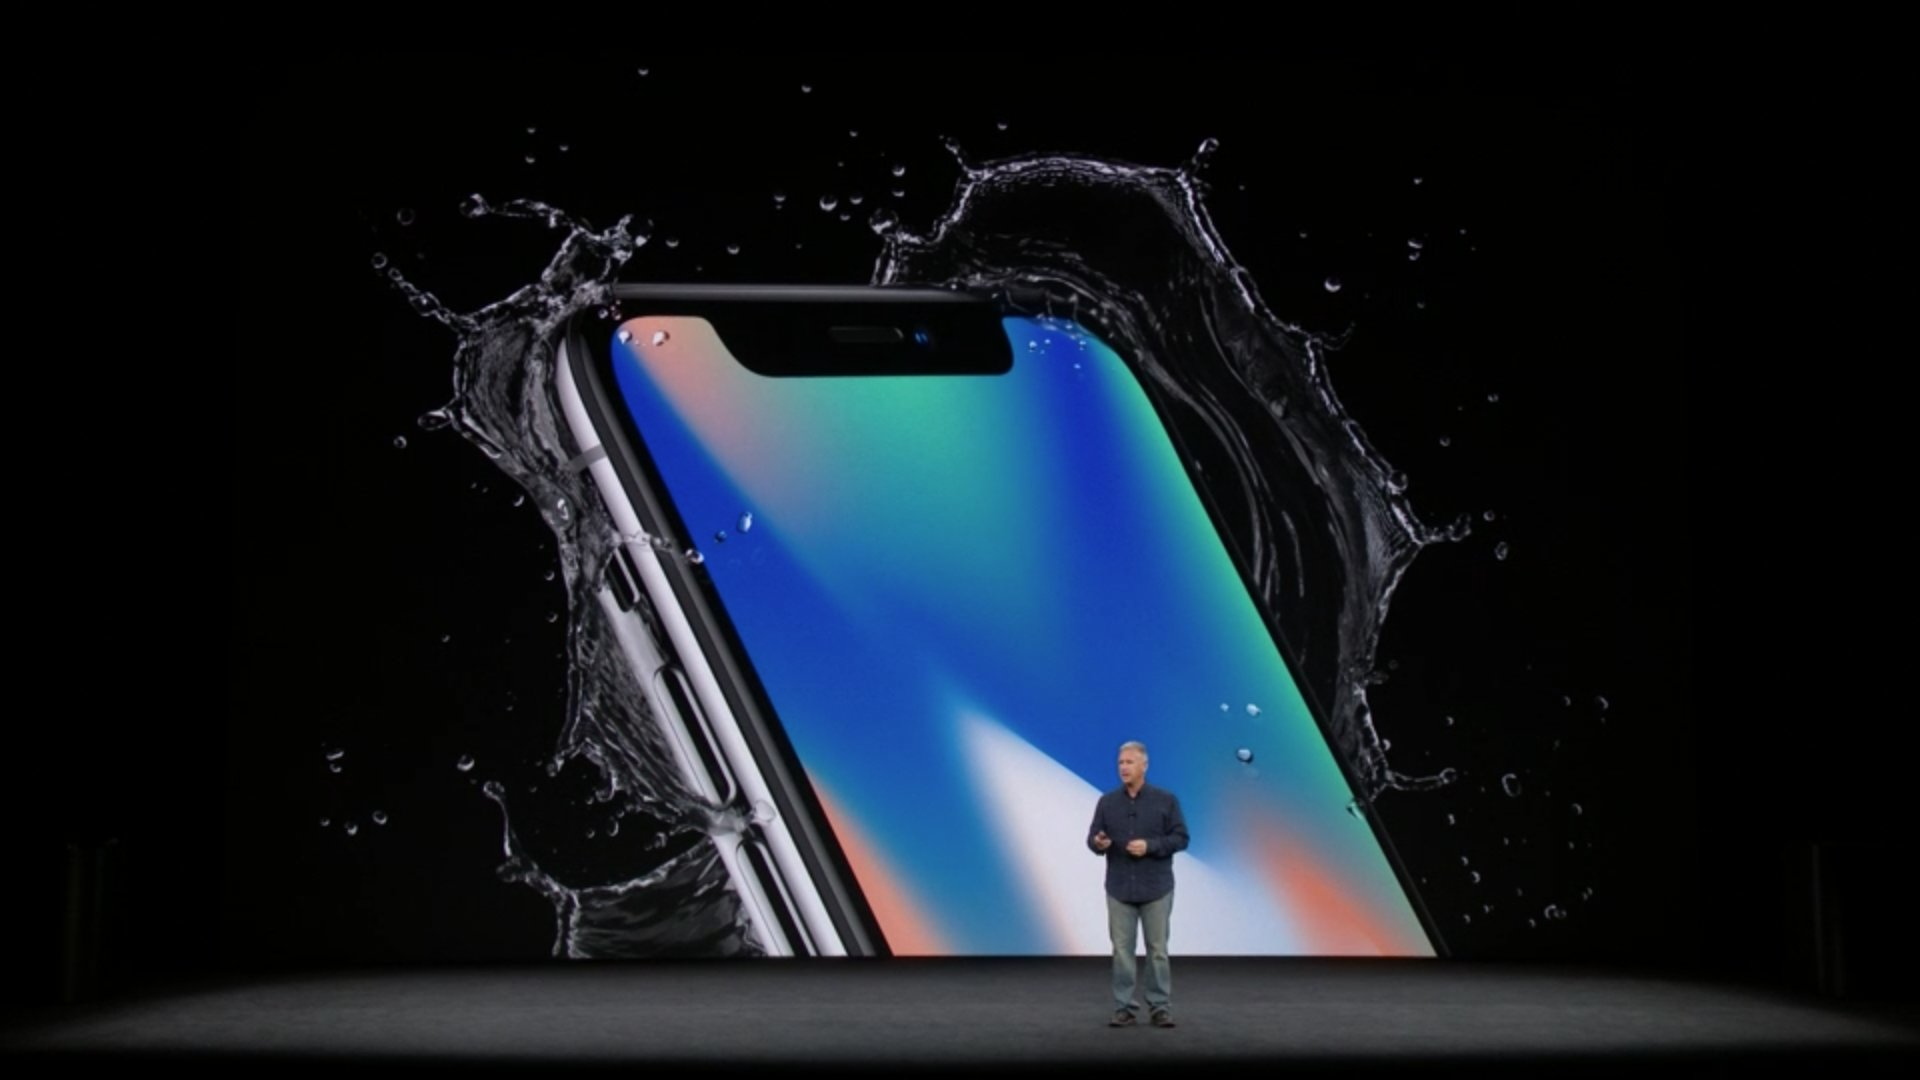 iPhone X will be water RESISTANT. #AppleEvent https://t.co/Z0ePXqg7k8